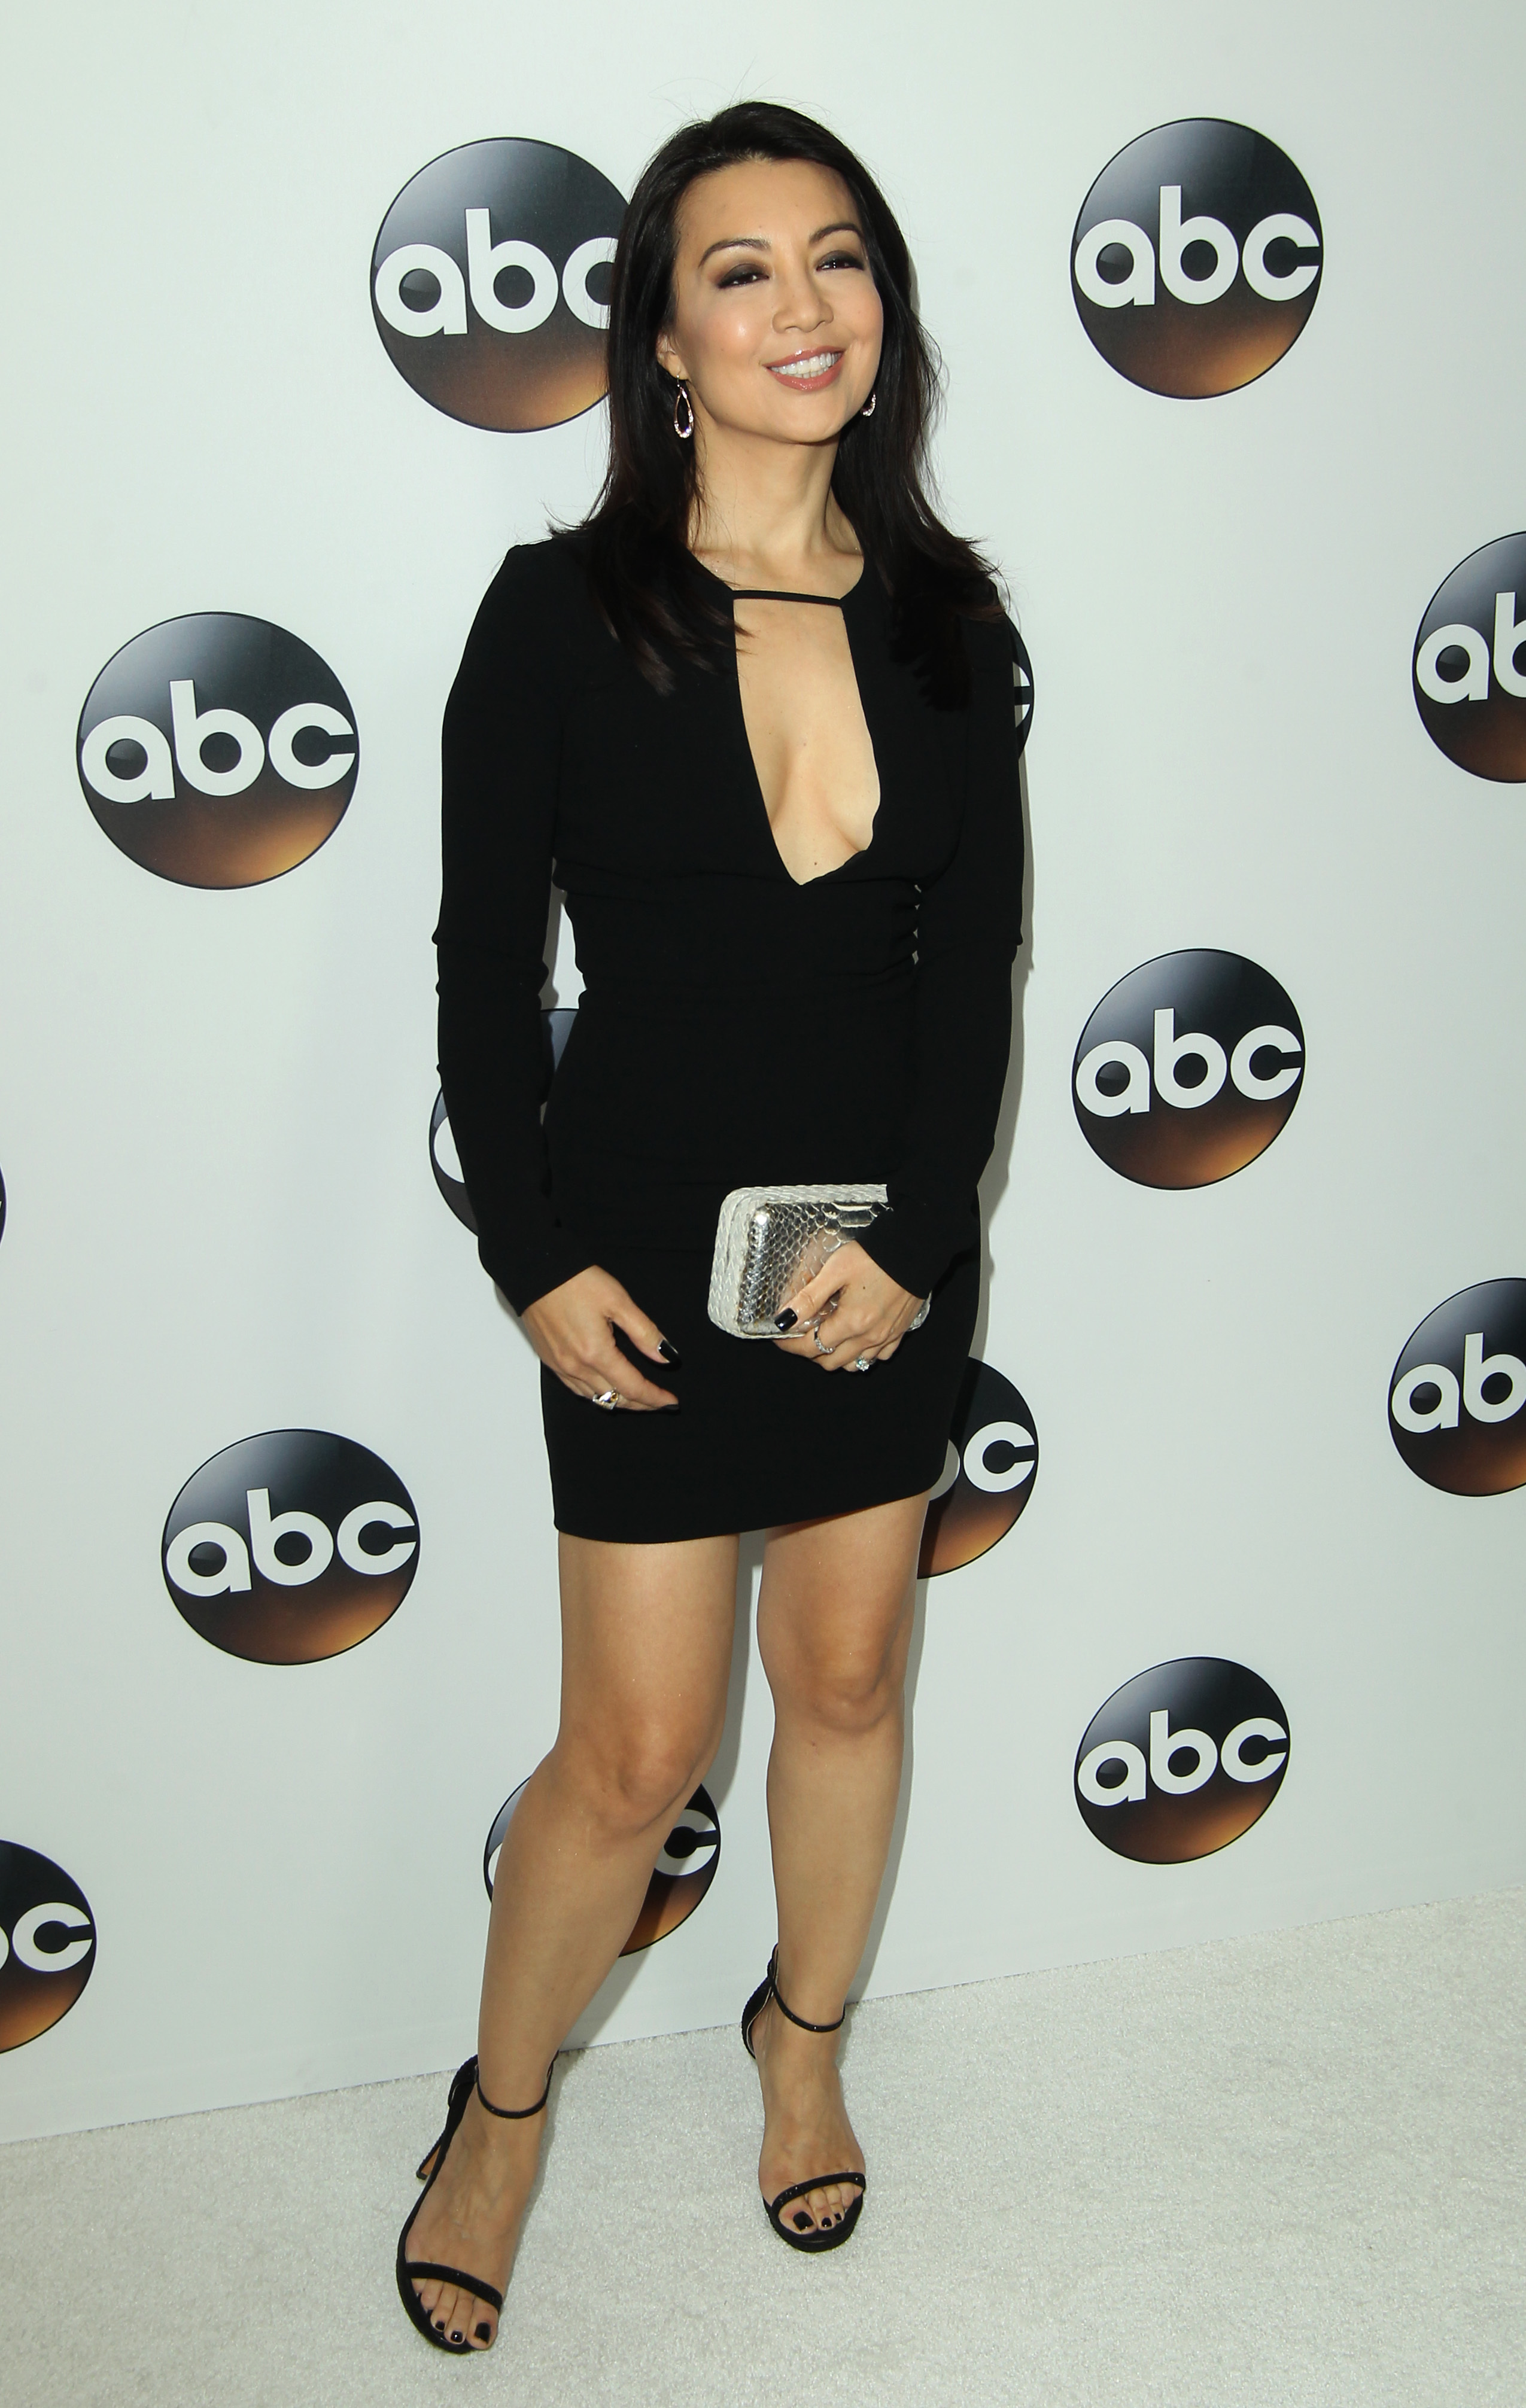 Photos Ming-Na Wen nude (64 foto and video), Sexy, Sideboobs, Selfie, legs 2019